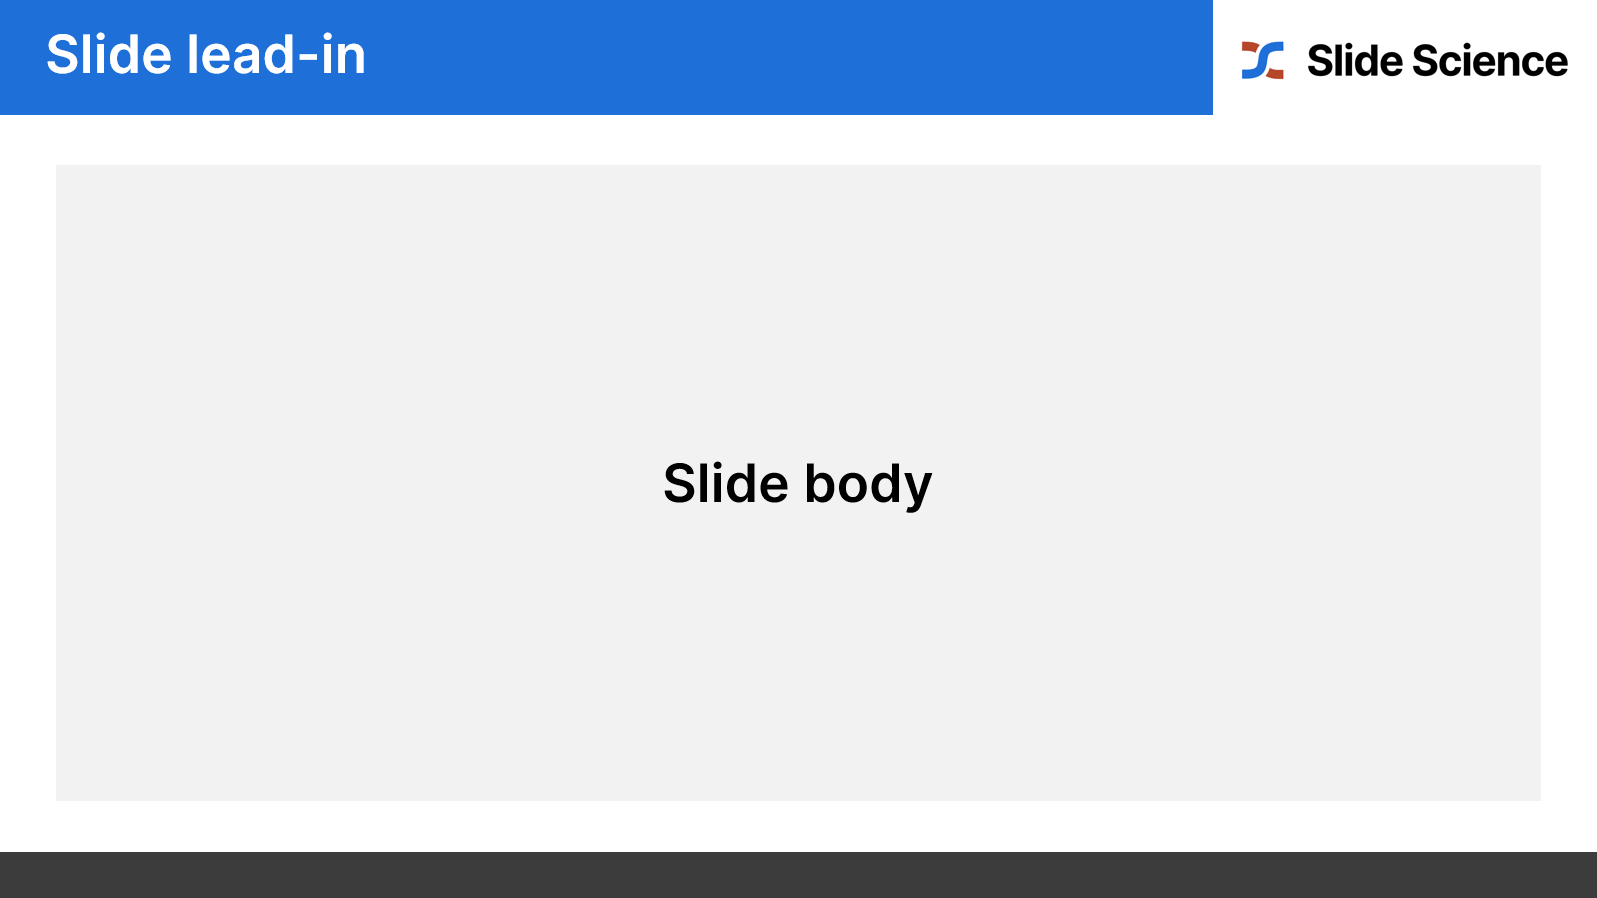 Components a PowerPoint slide: slide lead-in and slide body